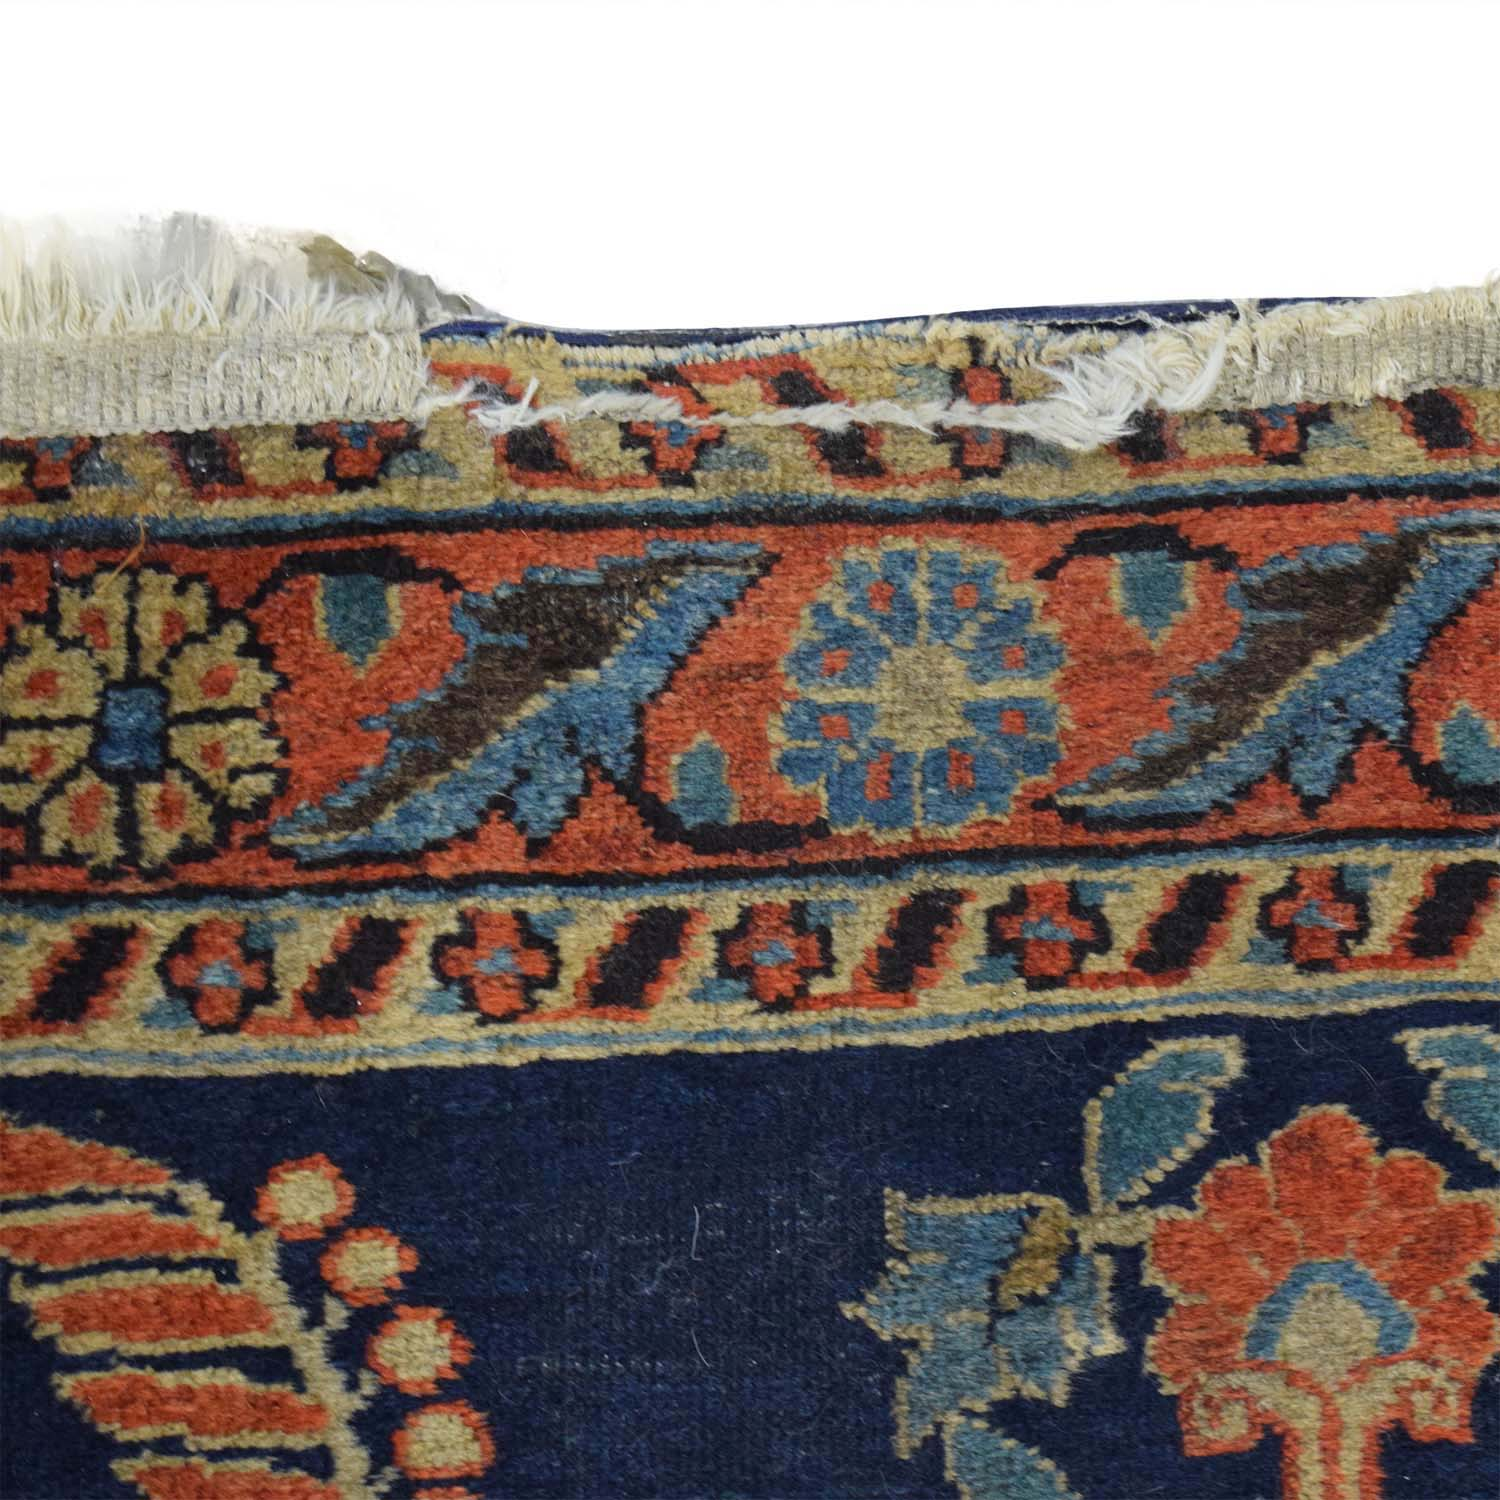 Persian Sarouk Multi-Colored Rug Runner / Decor